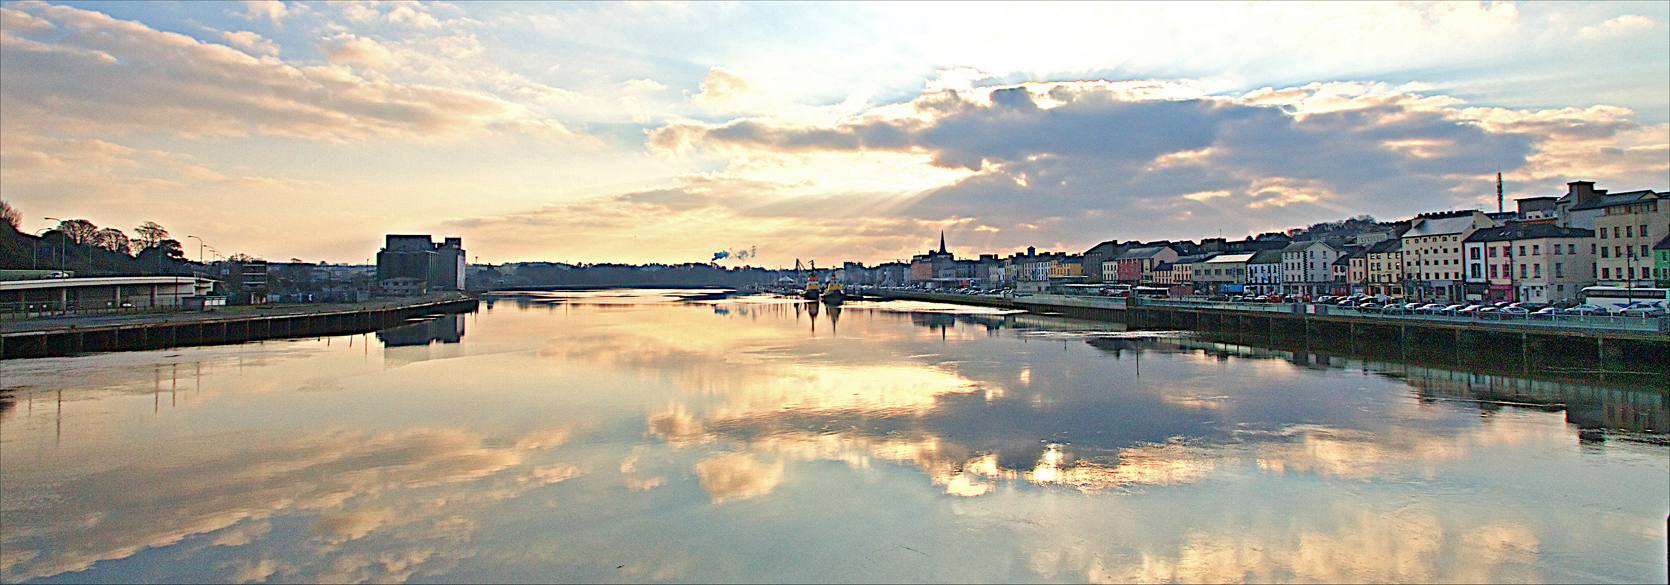 Waterford Photo on 3e Weather Forecast